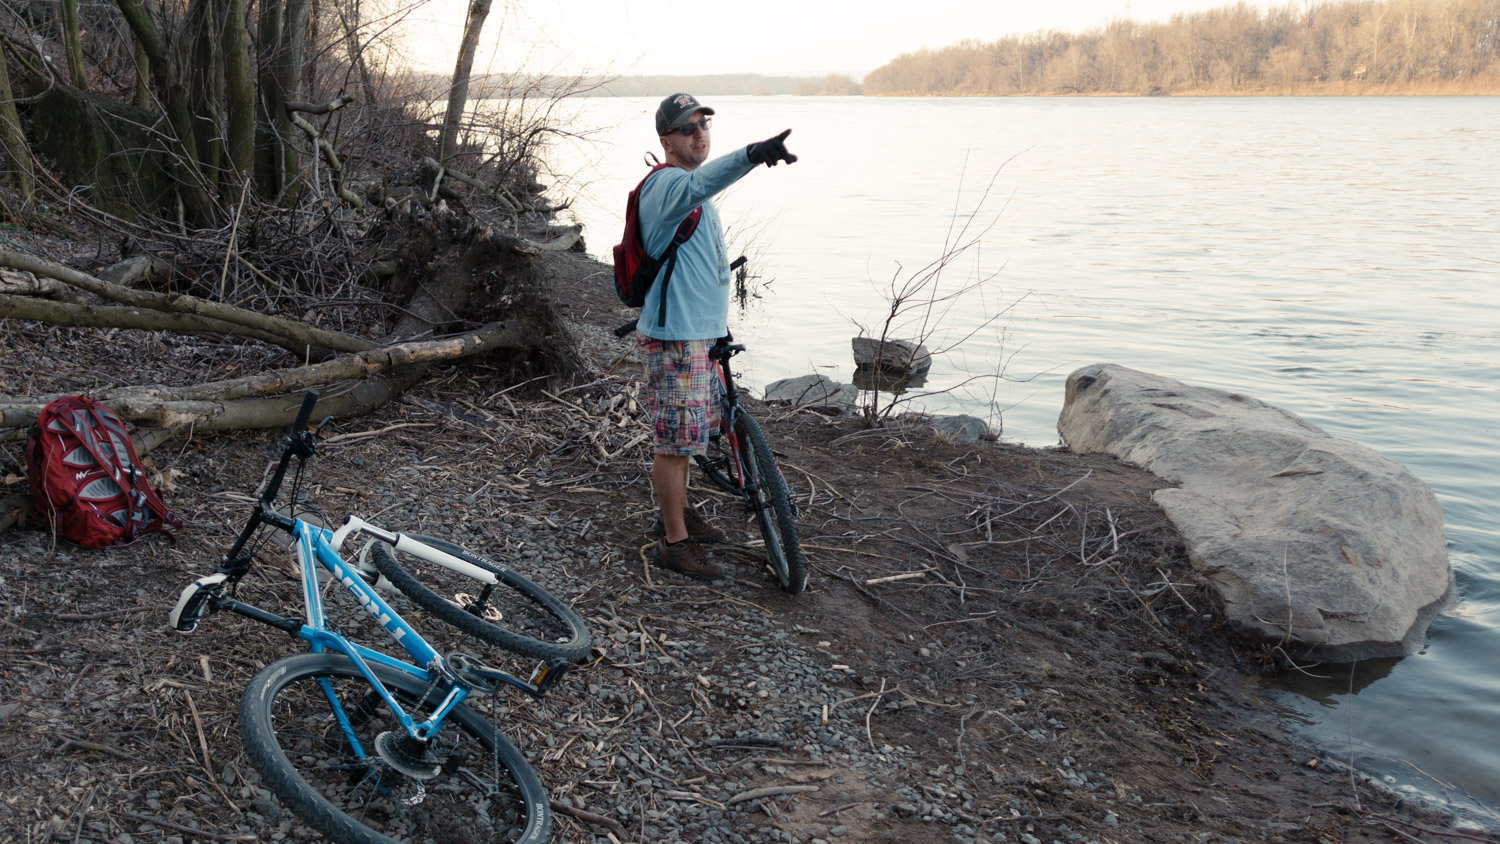 Bike Ride - New Cumberland, Pennsylvania - Susquehanna River - fine art photography